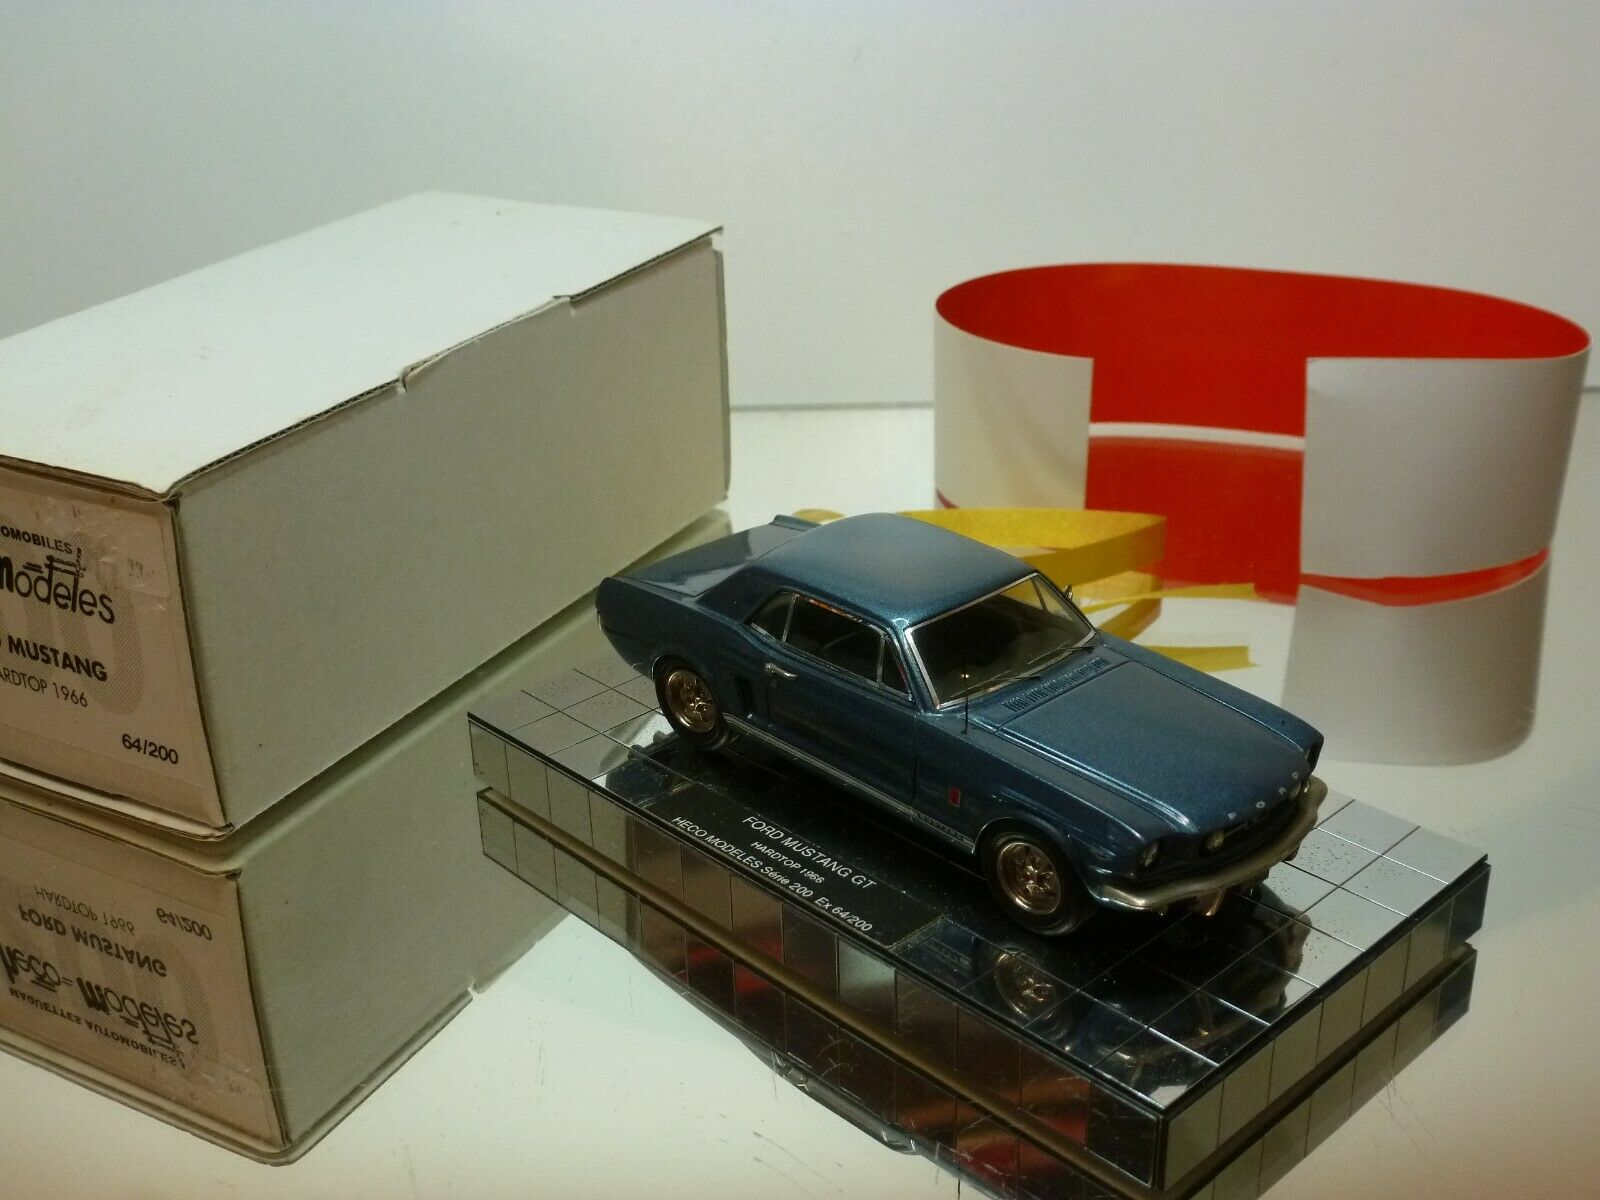 HECO MODELES FORD MUSTANG GT HARDTOP 1966 - Blau 1 43 - EXCELLENT IN BOX